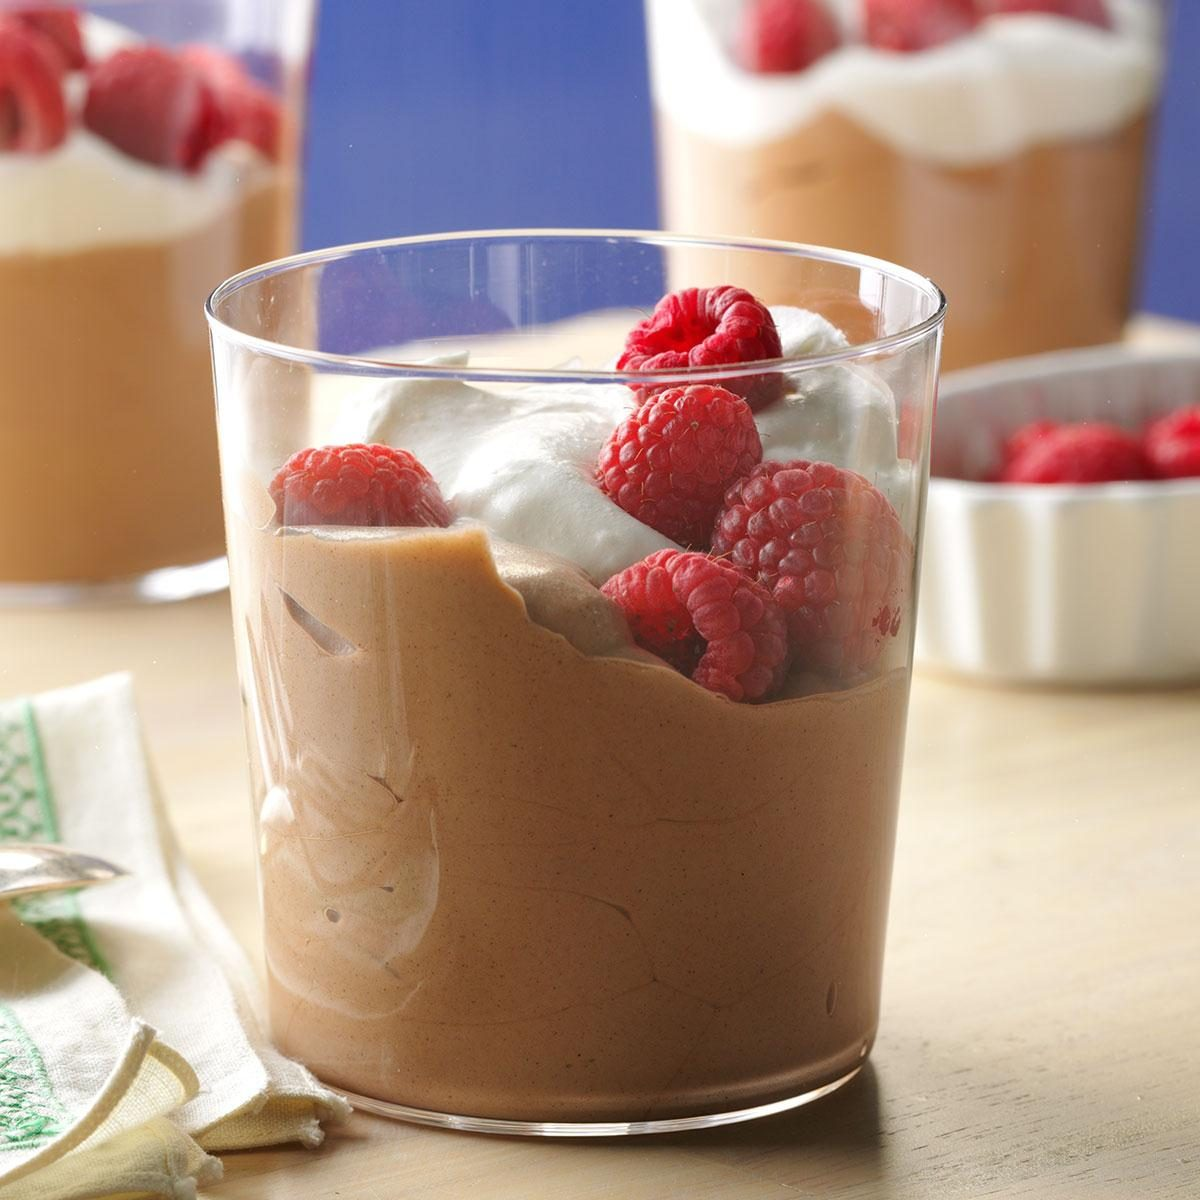 Semisweet Chocolate Mousse